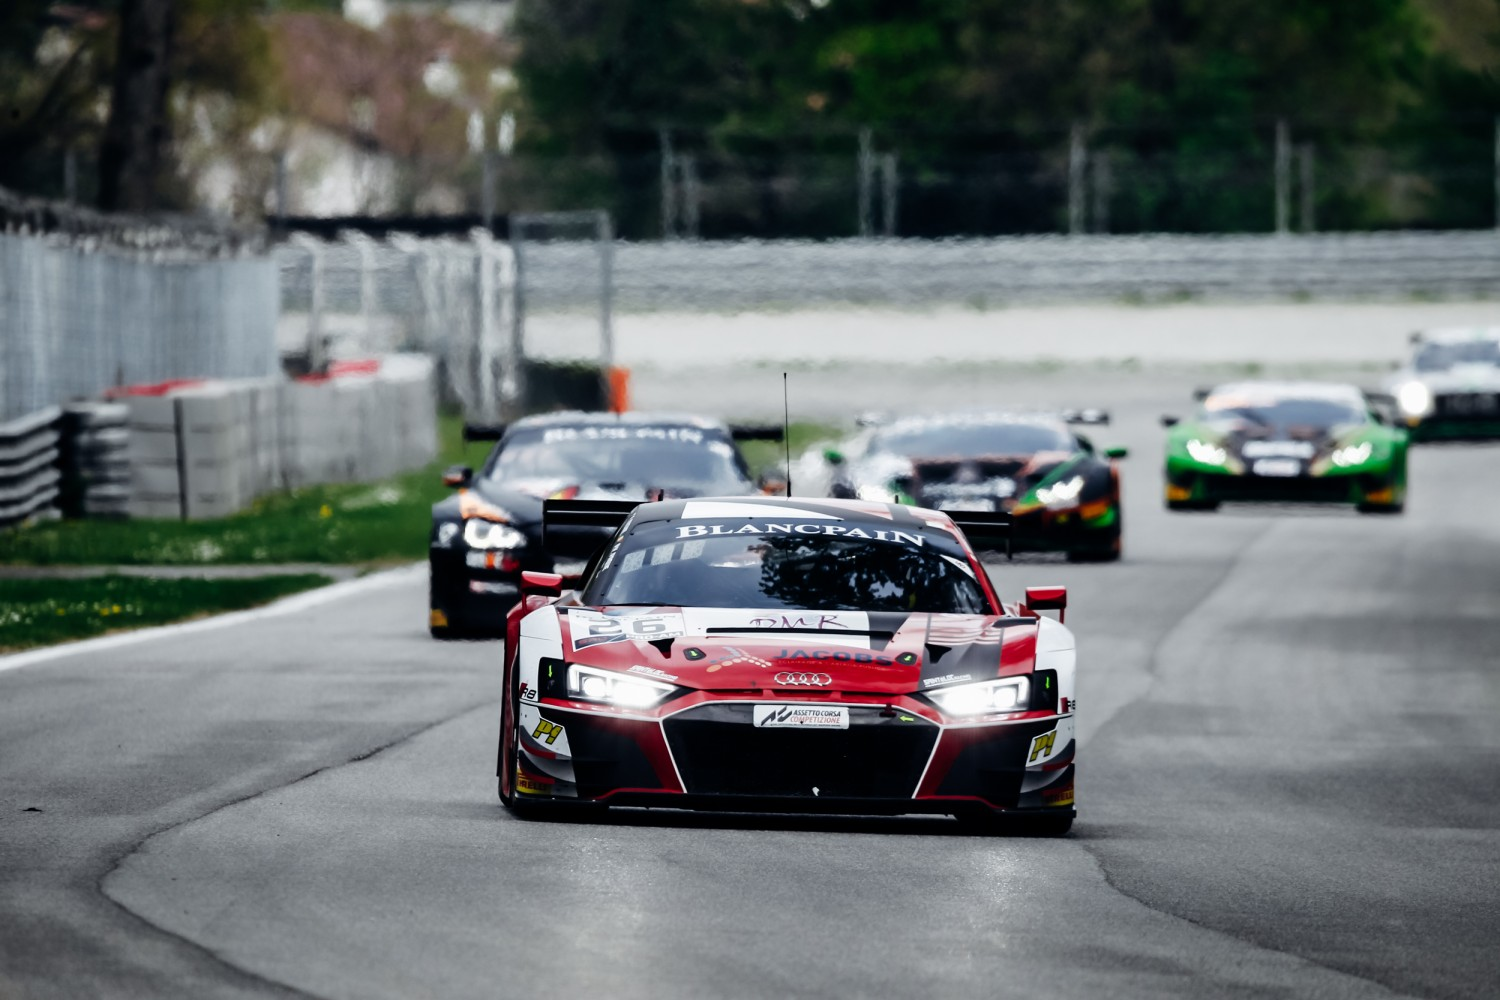 2019 Blancpain GT Series season kicks off with four hours of running at Monza